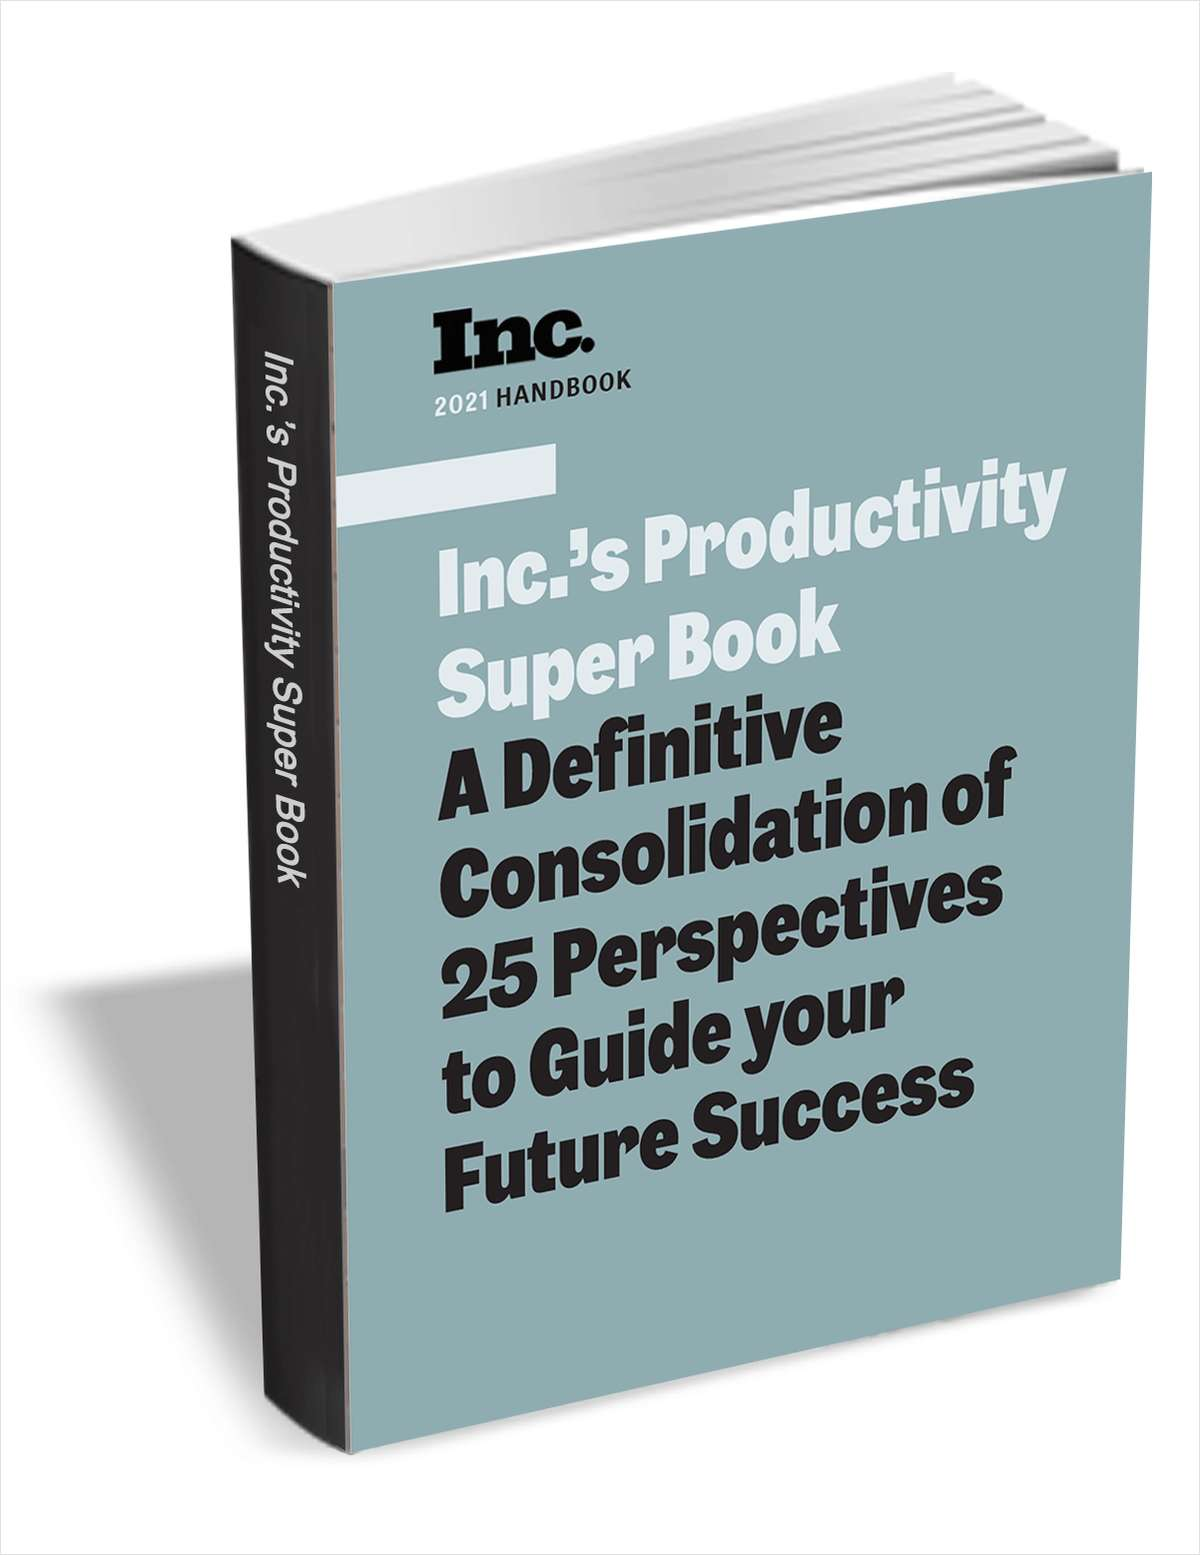 Inc.'s Productivity Super Book: A Definitive Consolidation of 25 Perspectives to Guide your Future Success